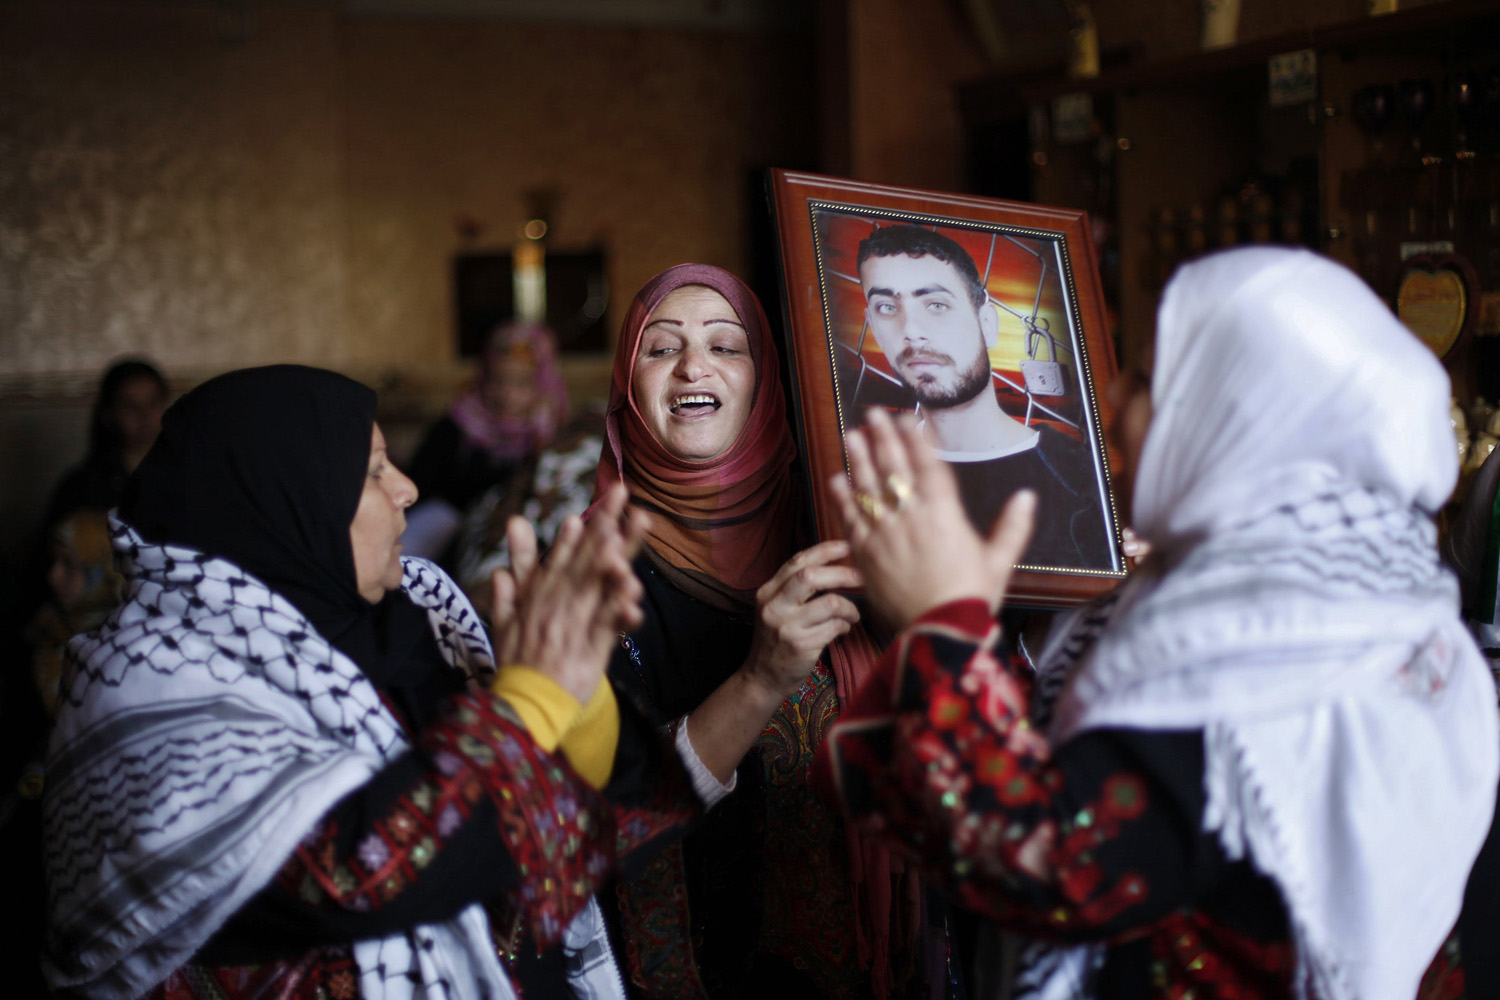 Dec. 30, 2013. Relatives of Palestinian prisoner Rami Barbakh, who has been held by Israel since 1994, celebrate ahead of his expected release in Khan Younis, in the southern Gaza Strip.